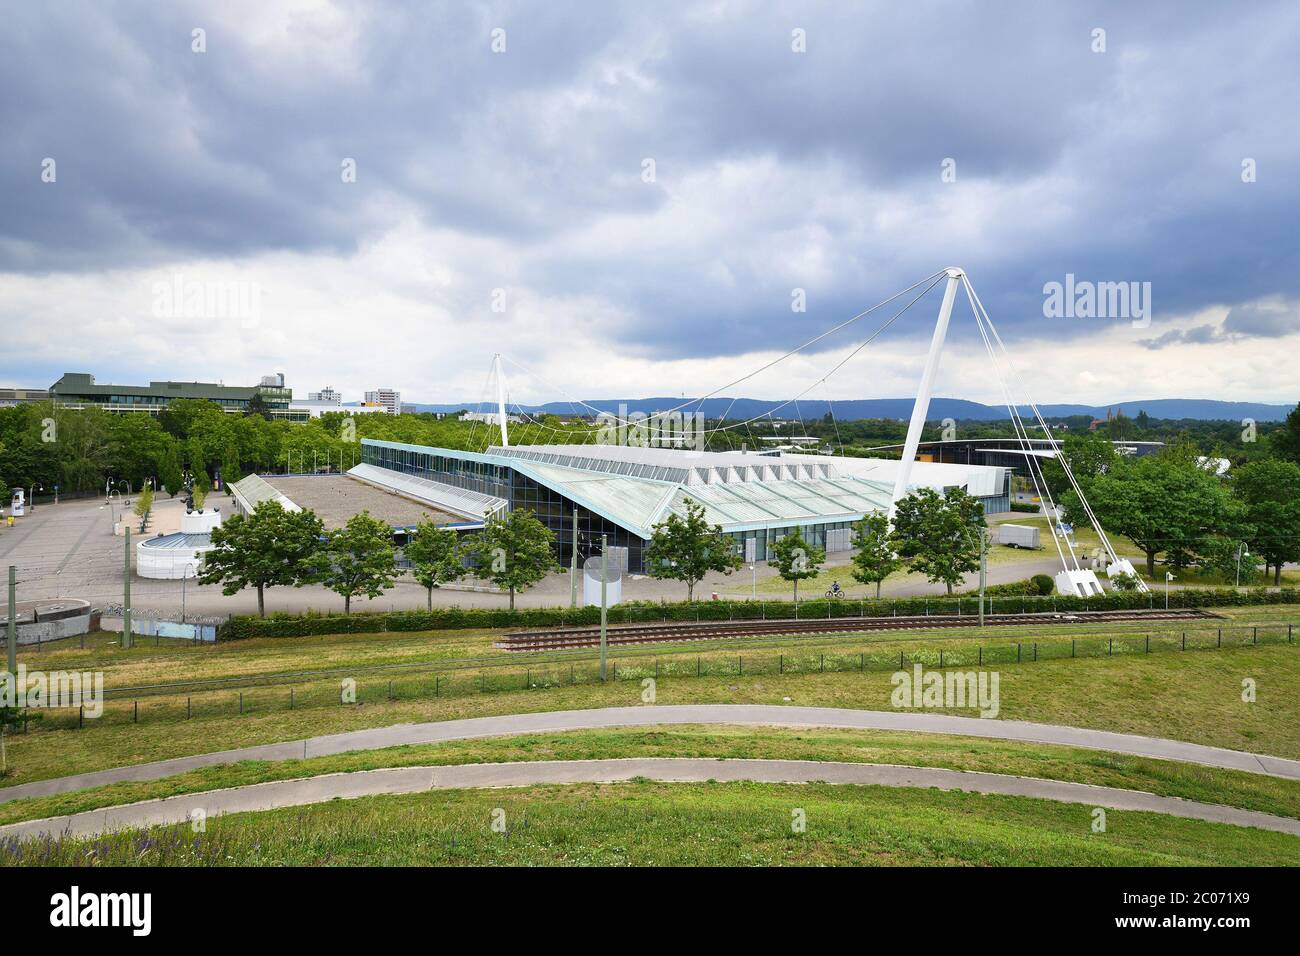 Karlsruhe, Germany - June 2020: Large event hall called 'Europahalle' in Karlsruhe city Stock Photo